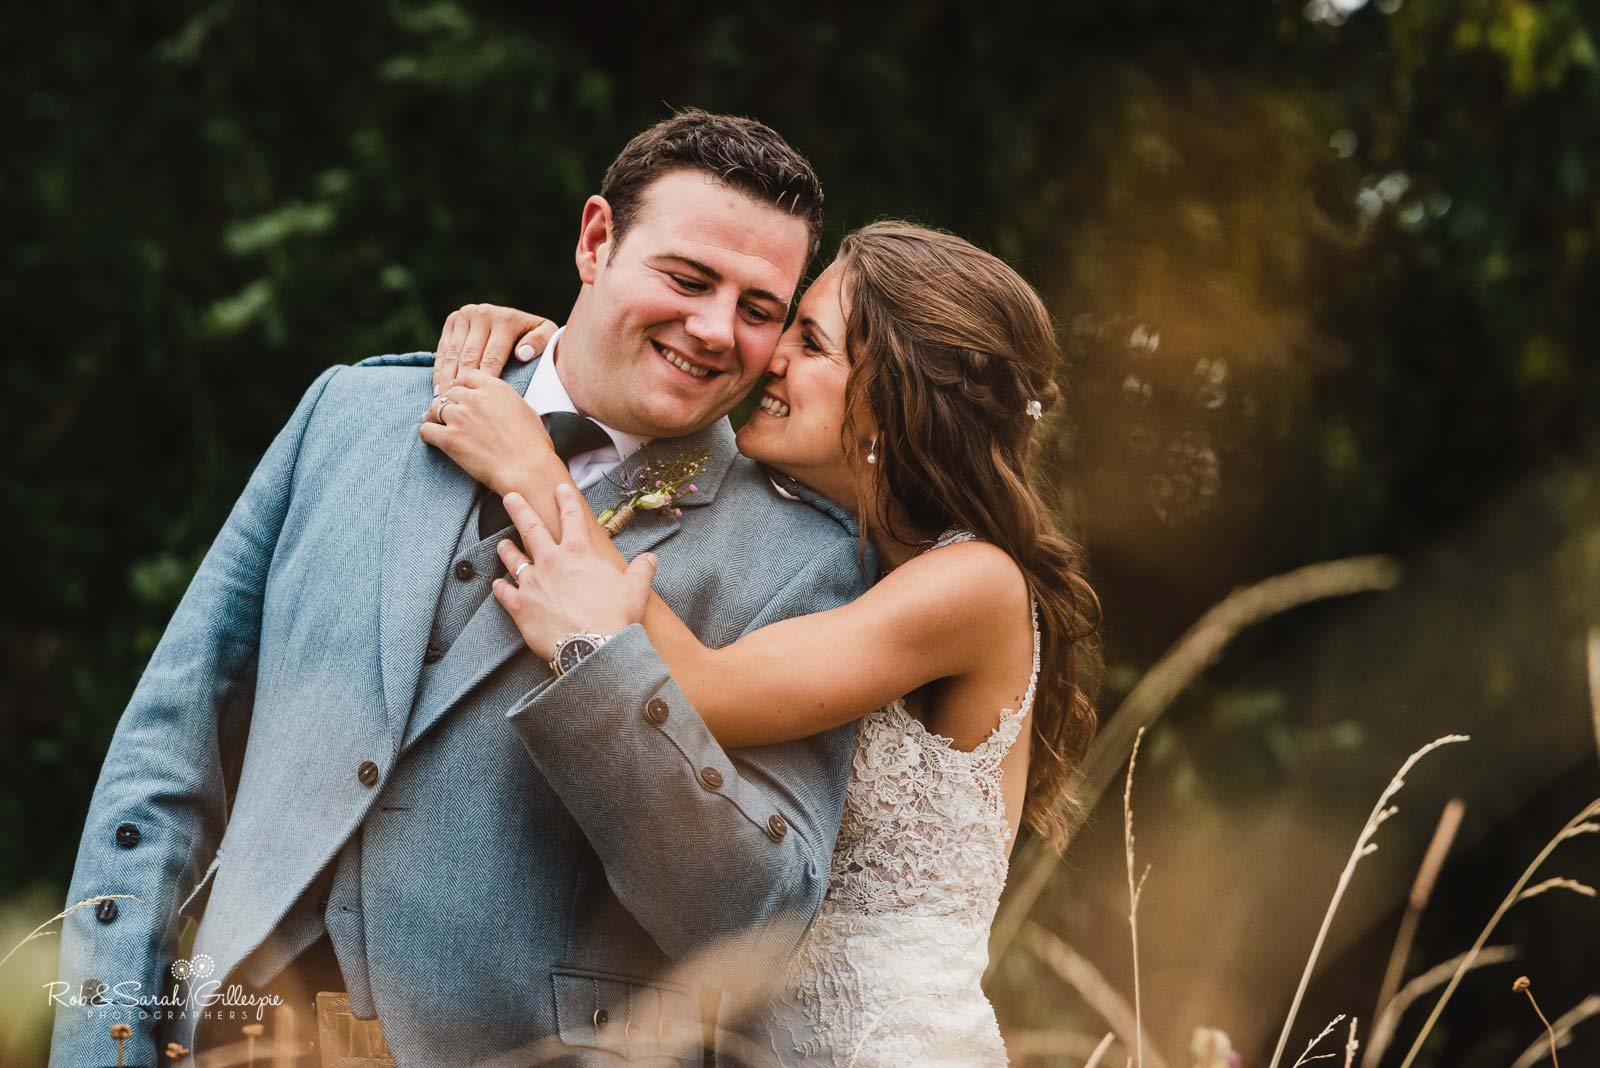 Natural and relaxed wedding photography at Wethele Manor